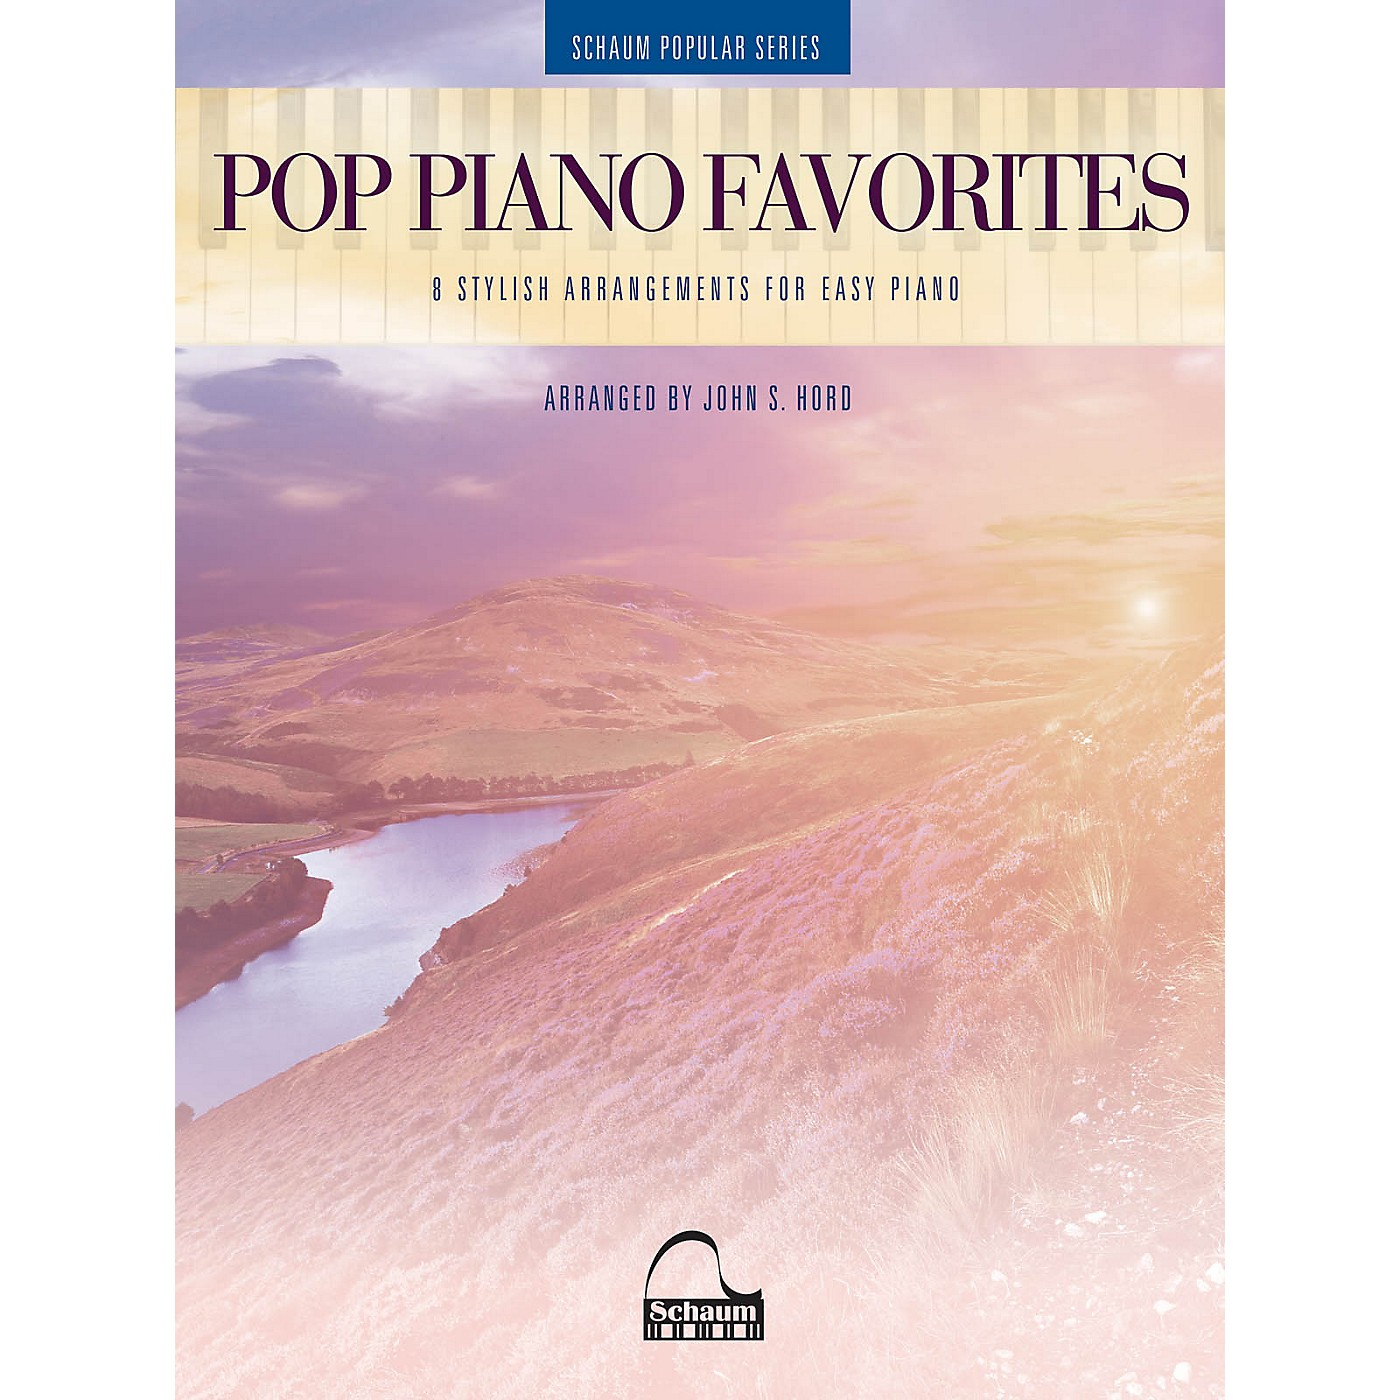 SCHAUM Pop Piano Favorites - 8 Stylish Arrangements for Easy Piano (Schaum Popular Series arranged from John S. Hord) thumbnail